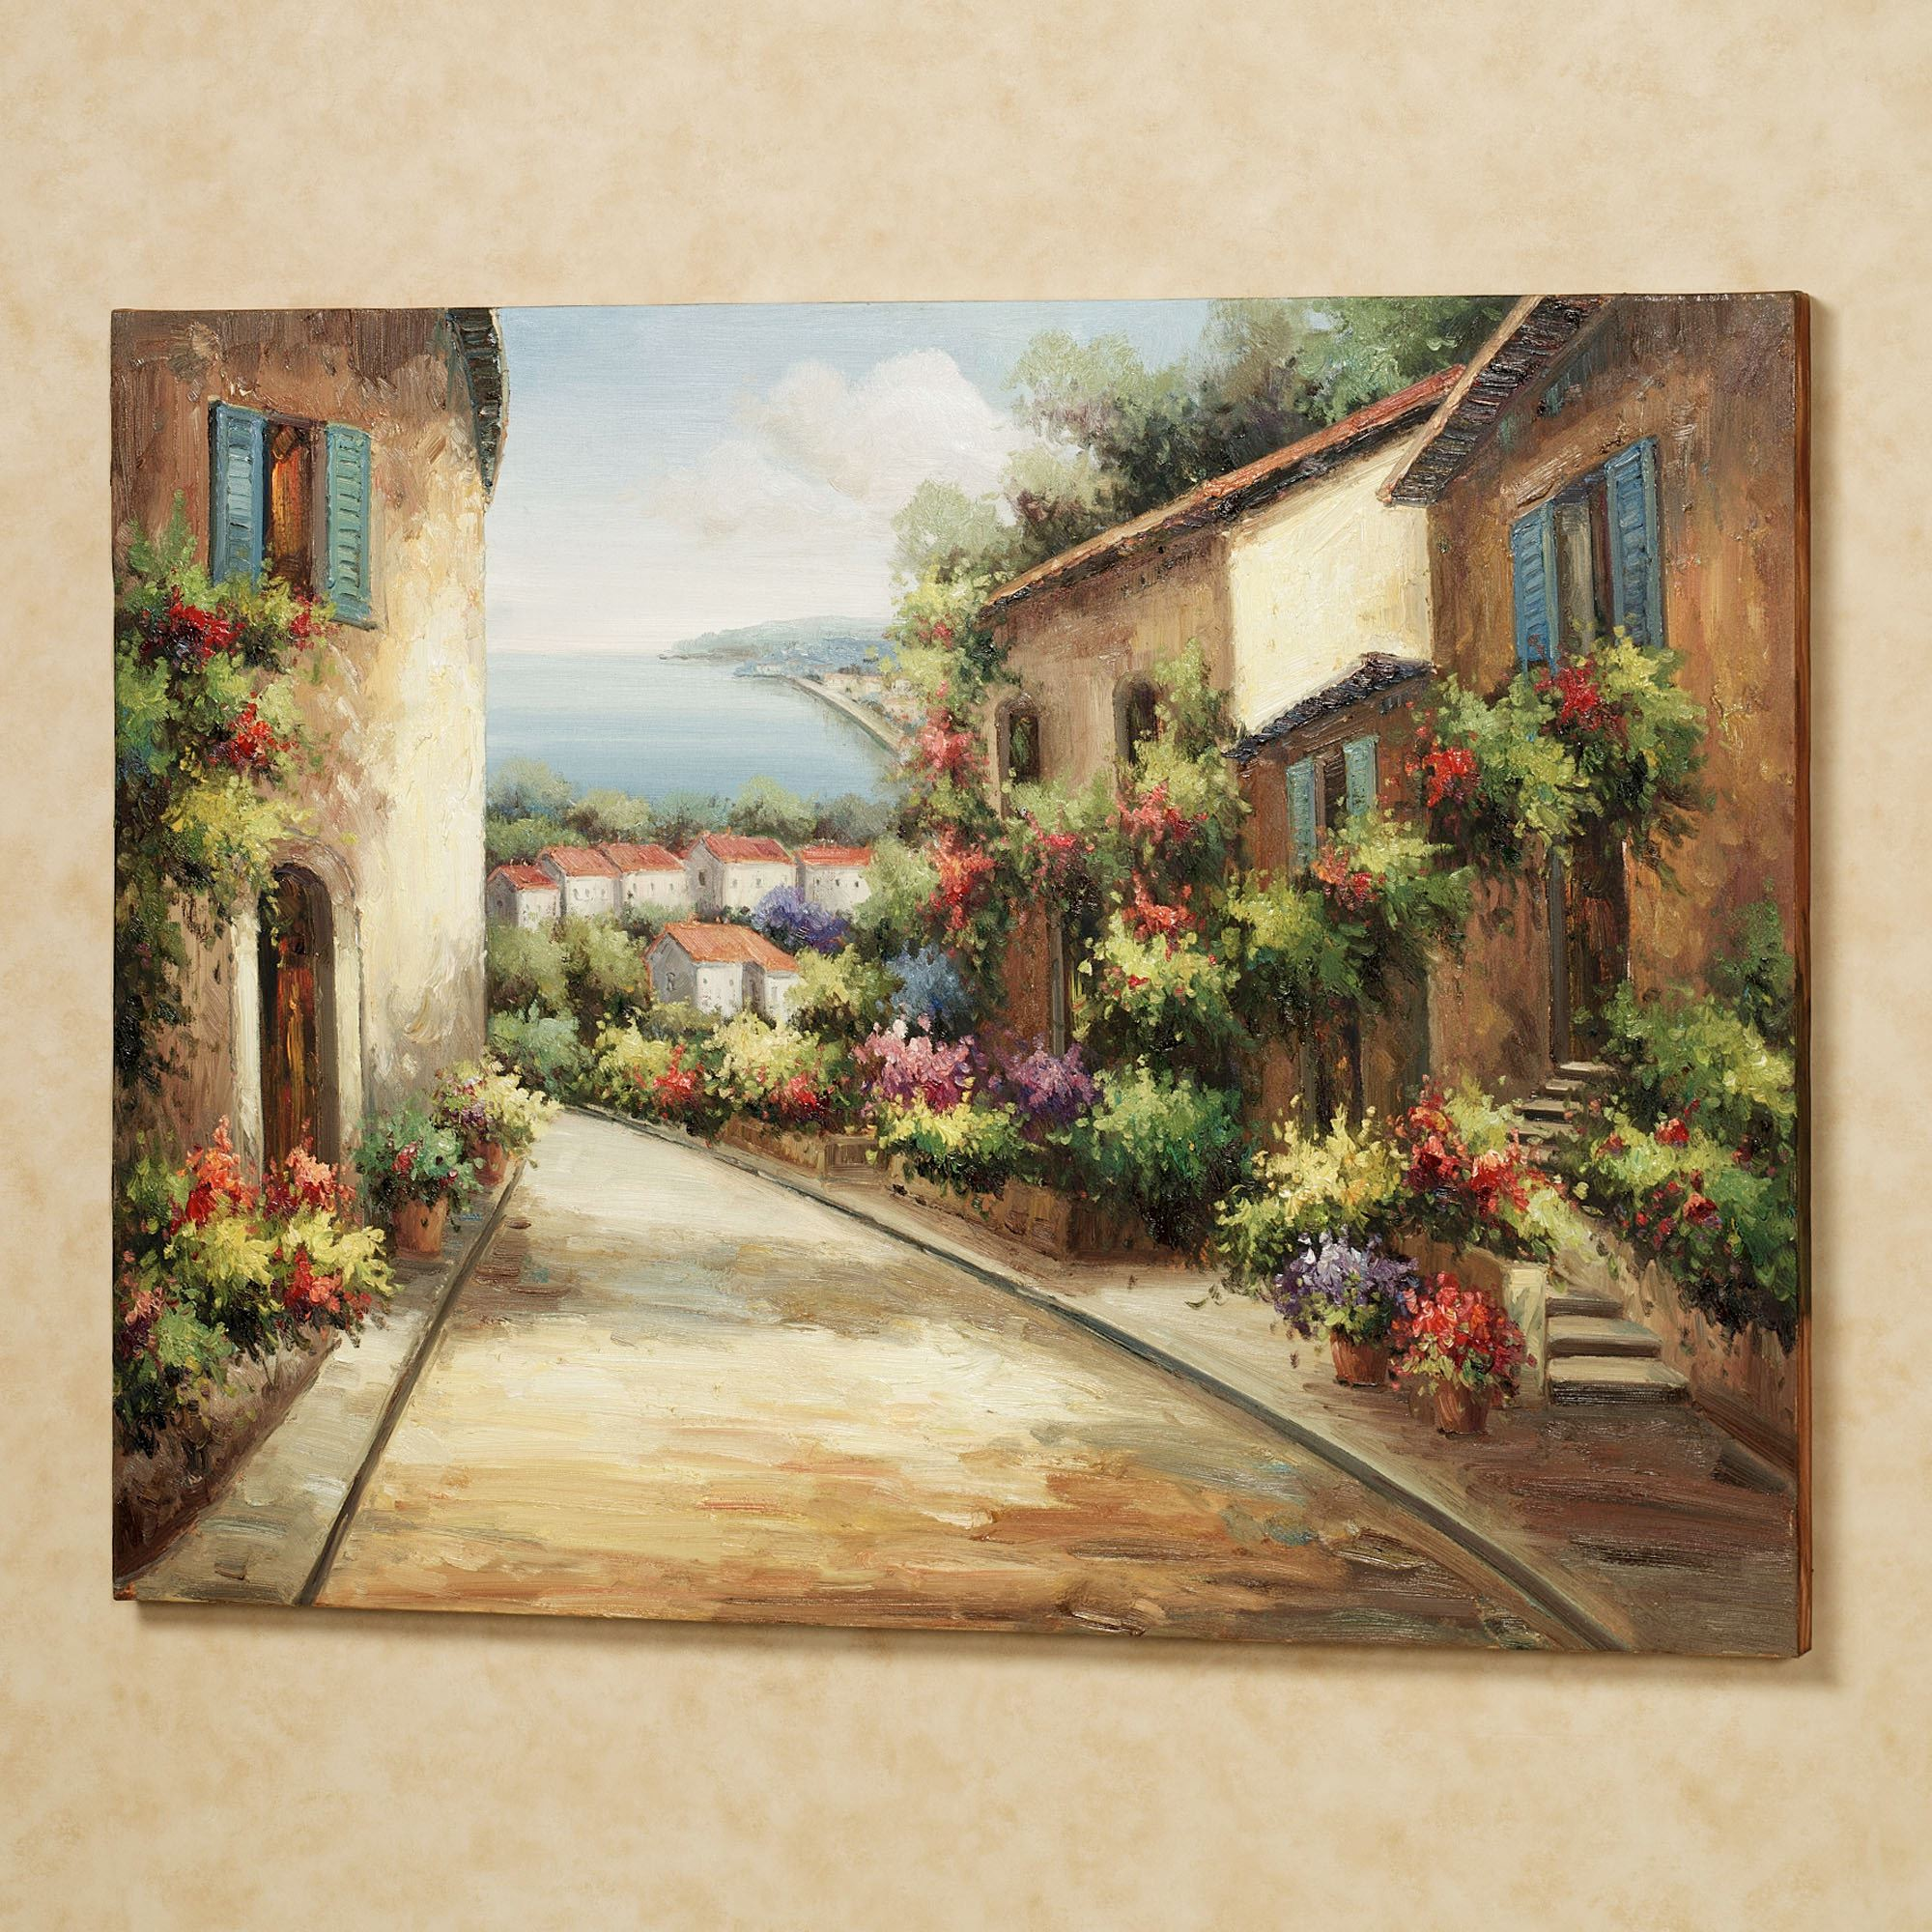 Italian Outdoor Wall Decor : Streets of tuscany canvas wall art